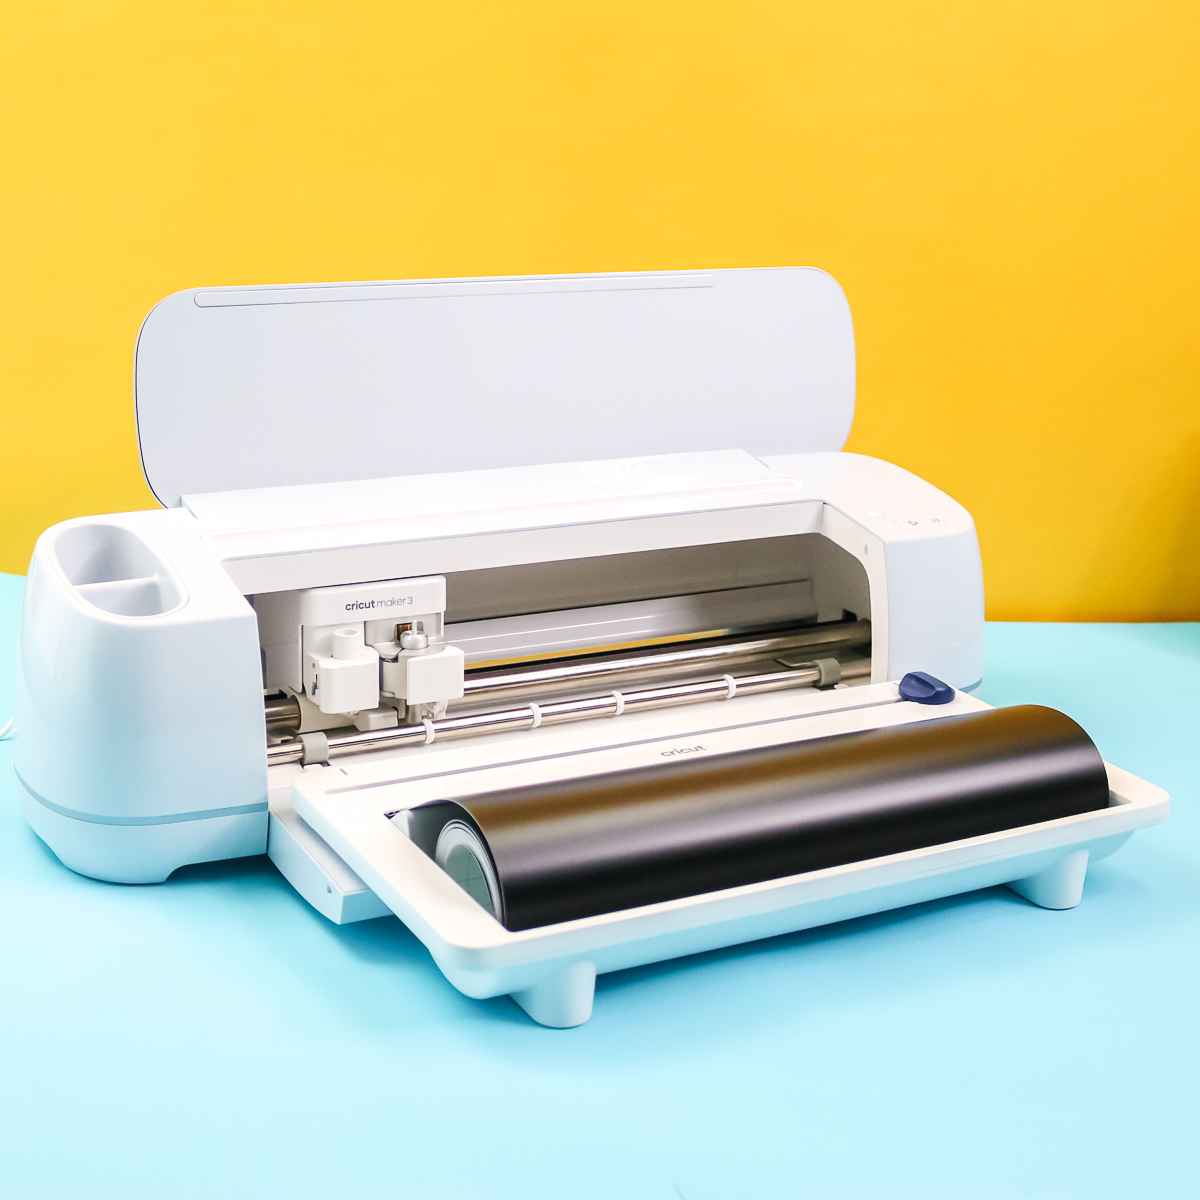 cricut maker 3 with roll holder installed